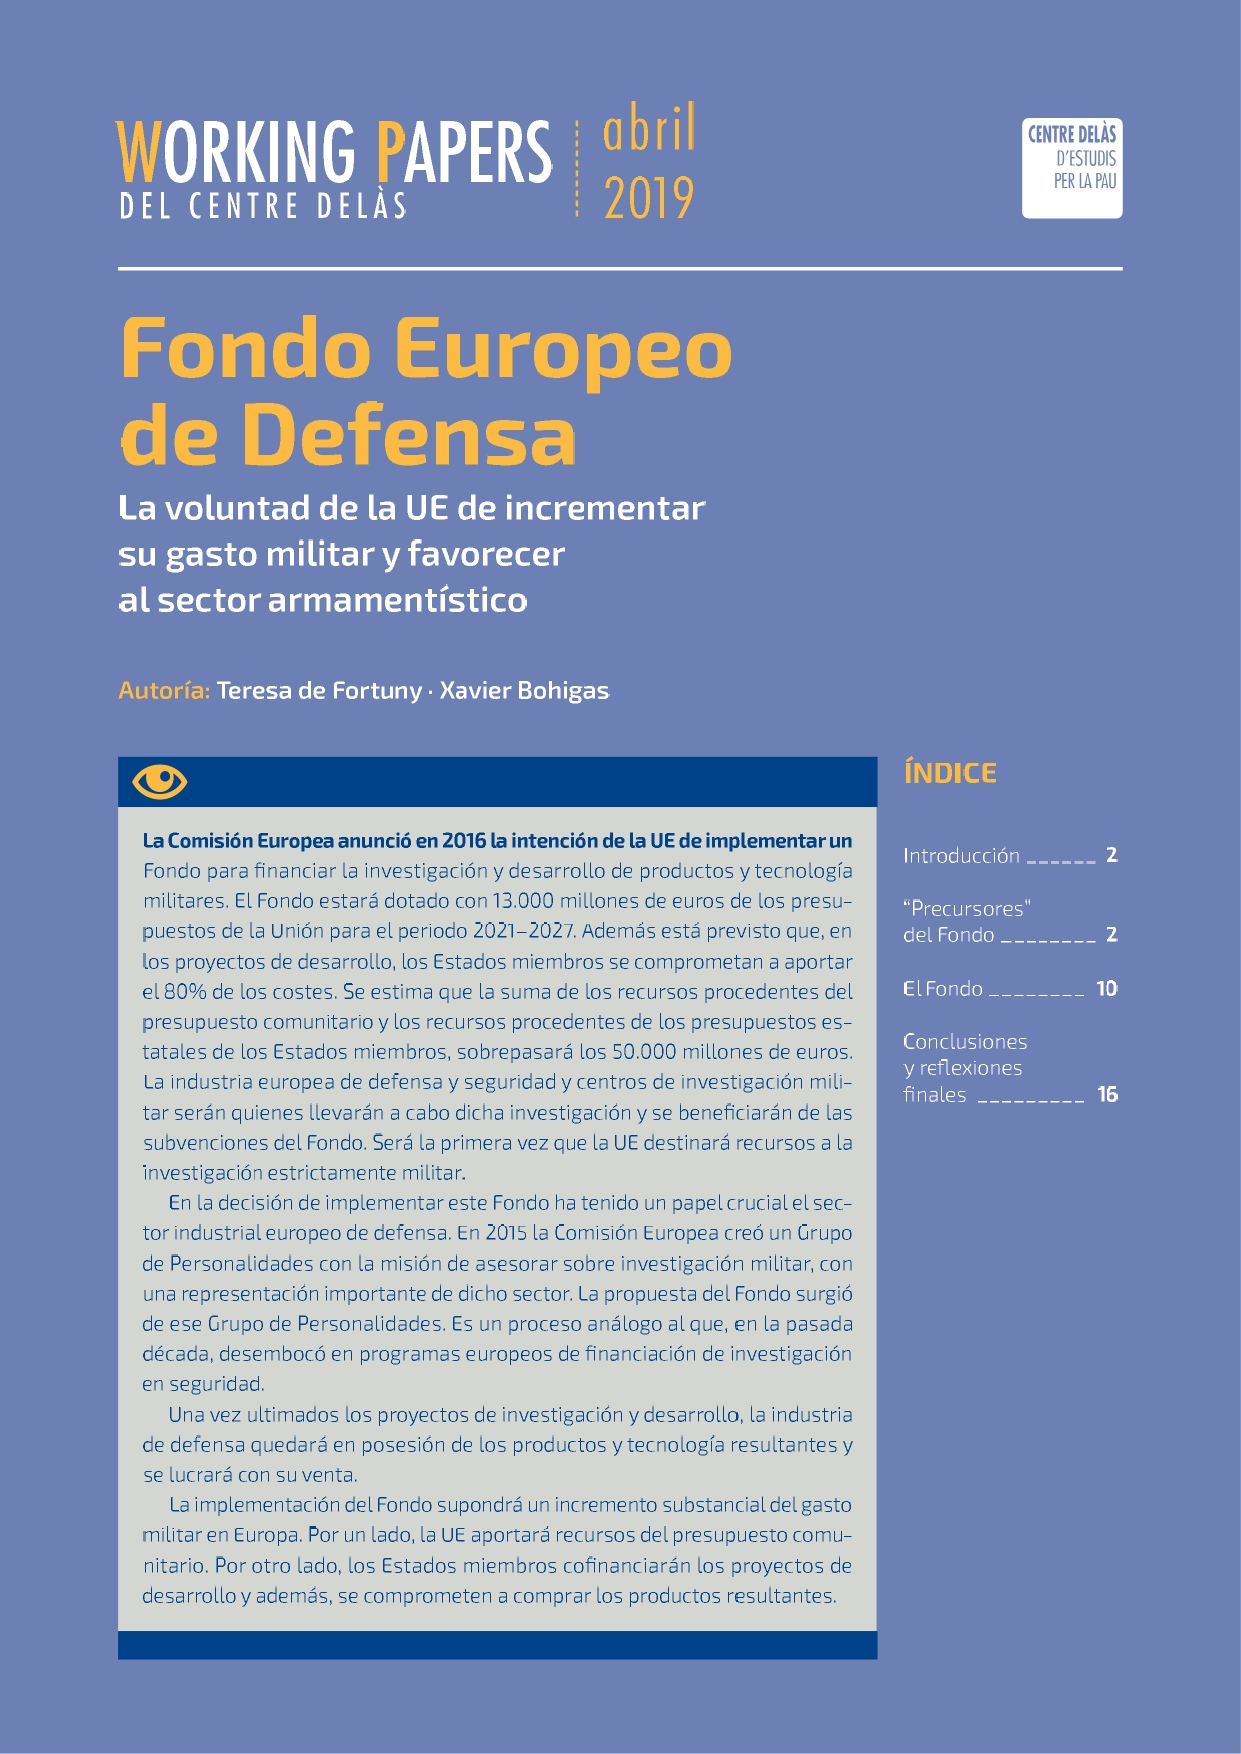 Working Paper: Fondo Europeo de Defensa